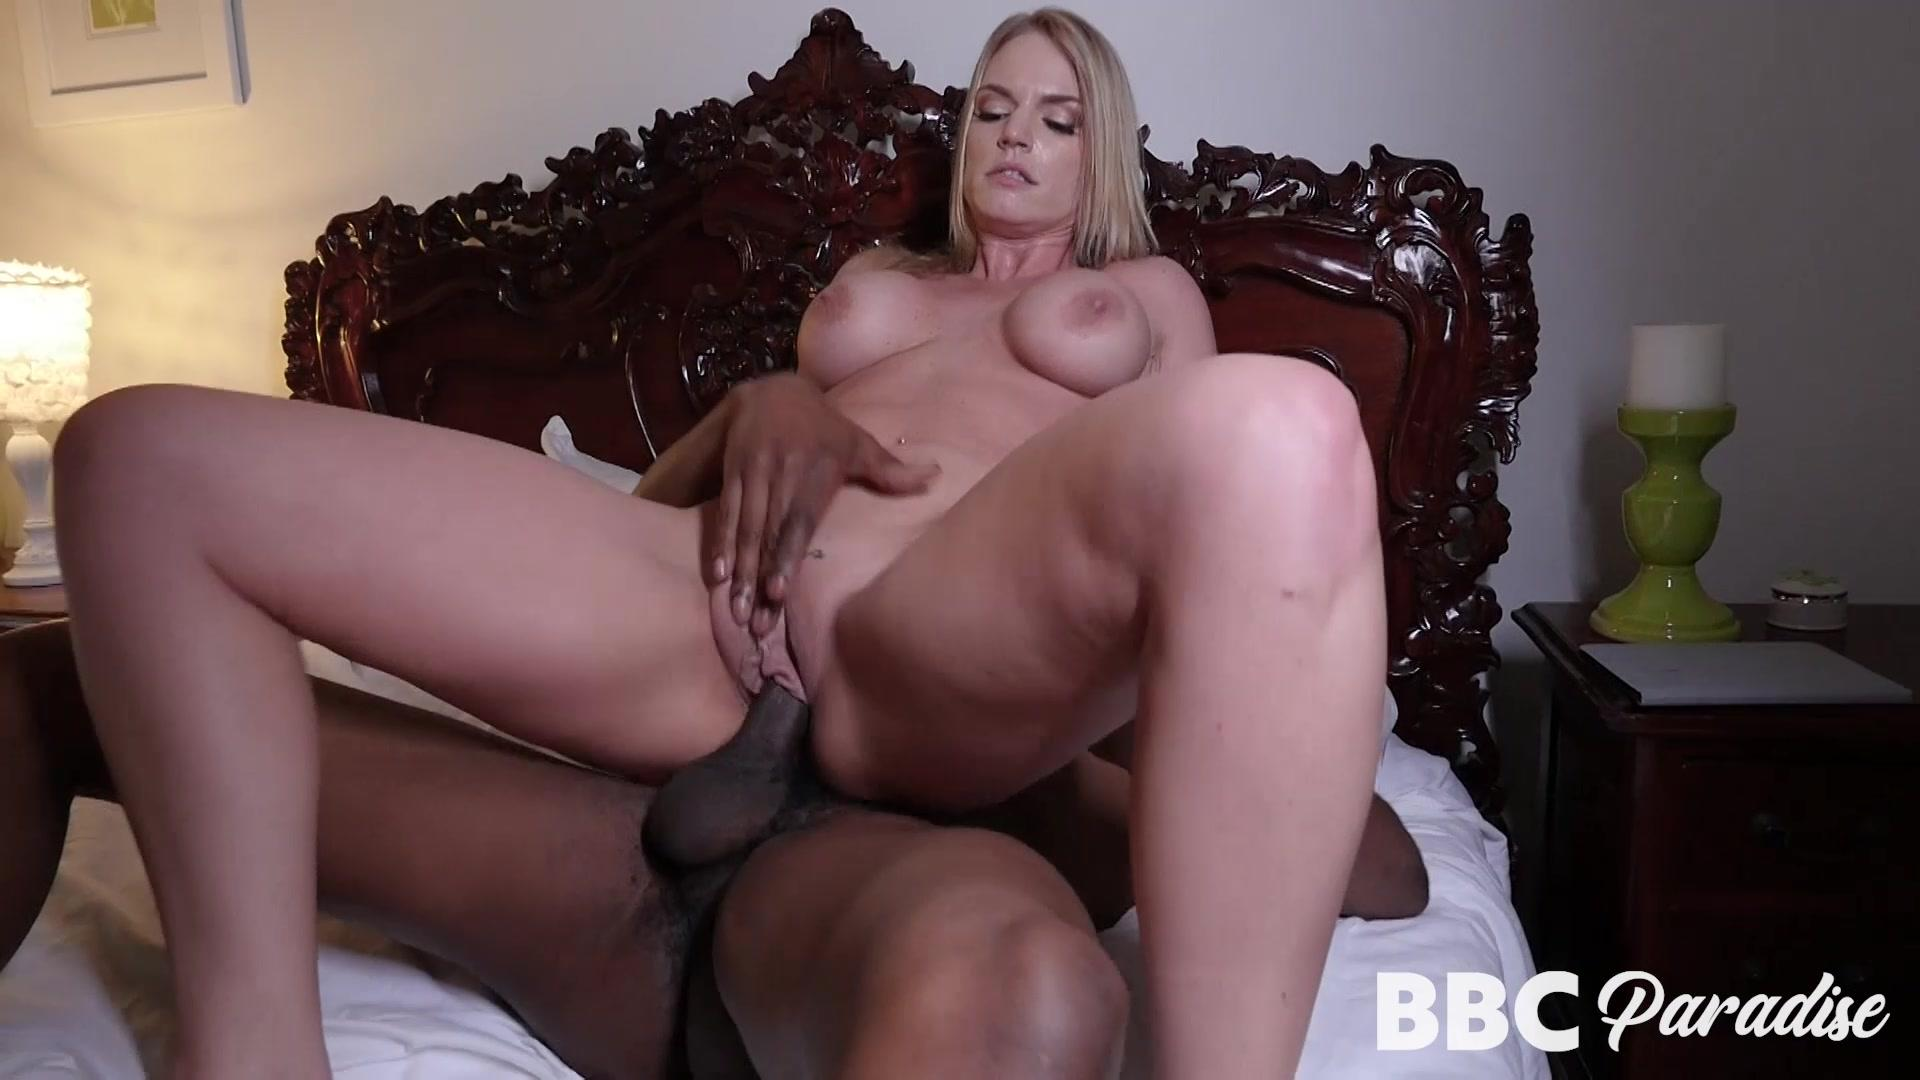 Bbcparadise  Rachael Cavalli Black Cock Before Bed